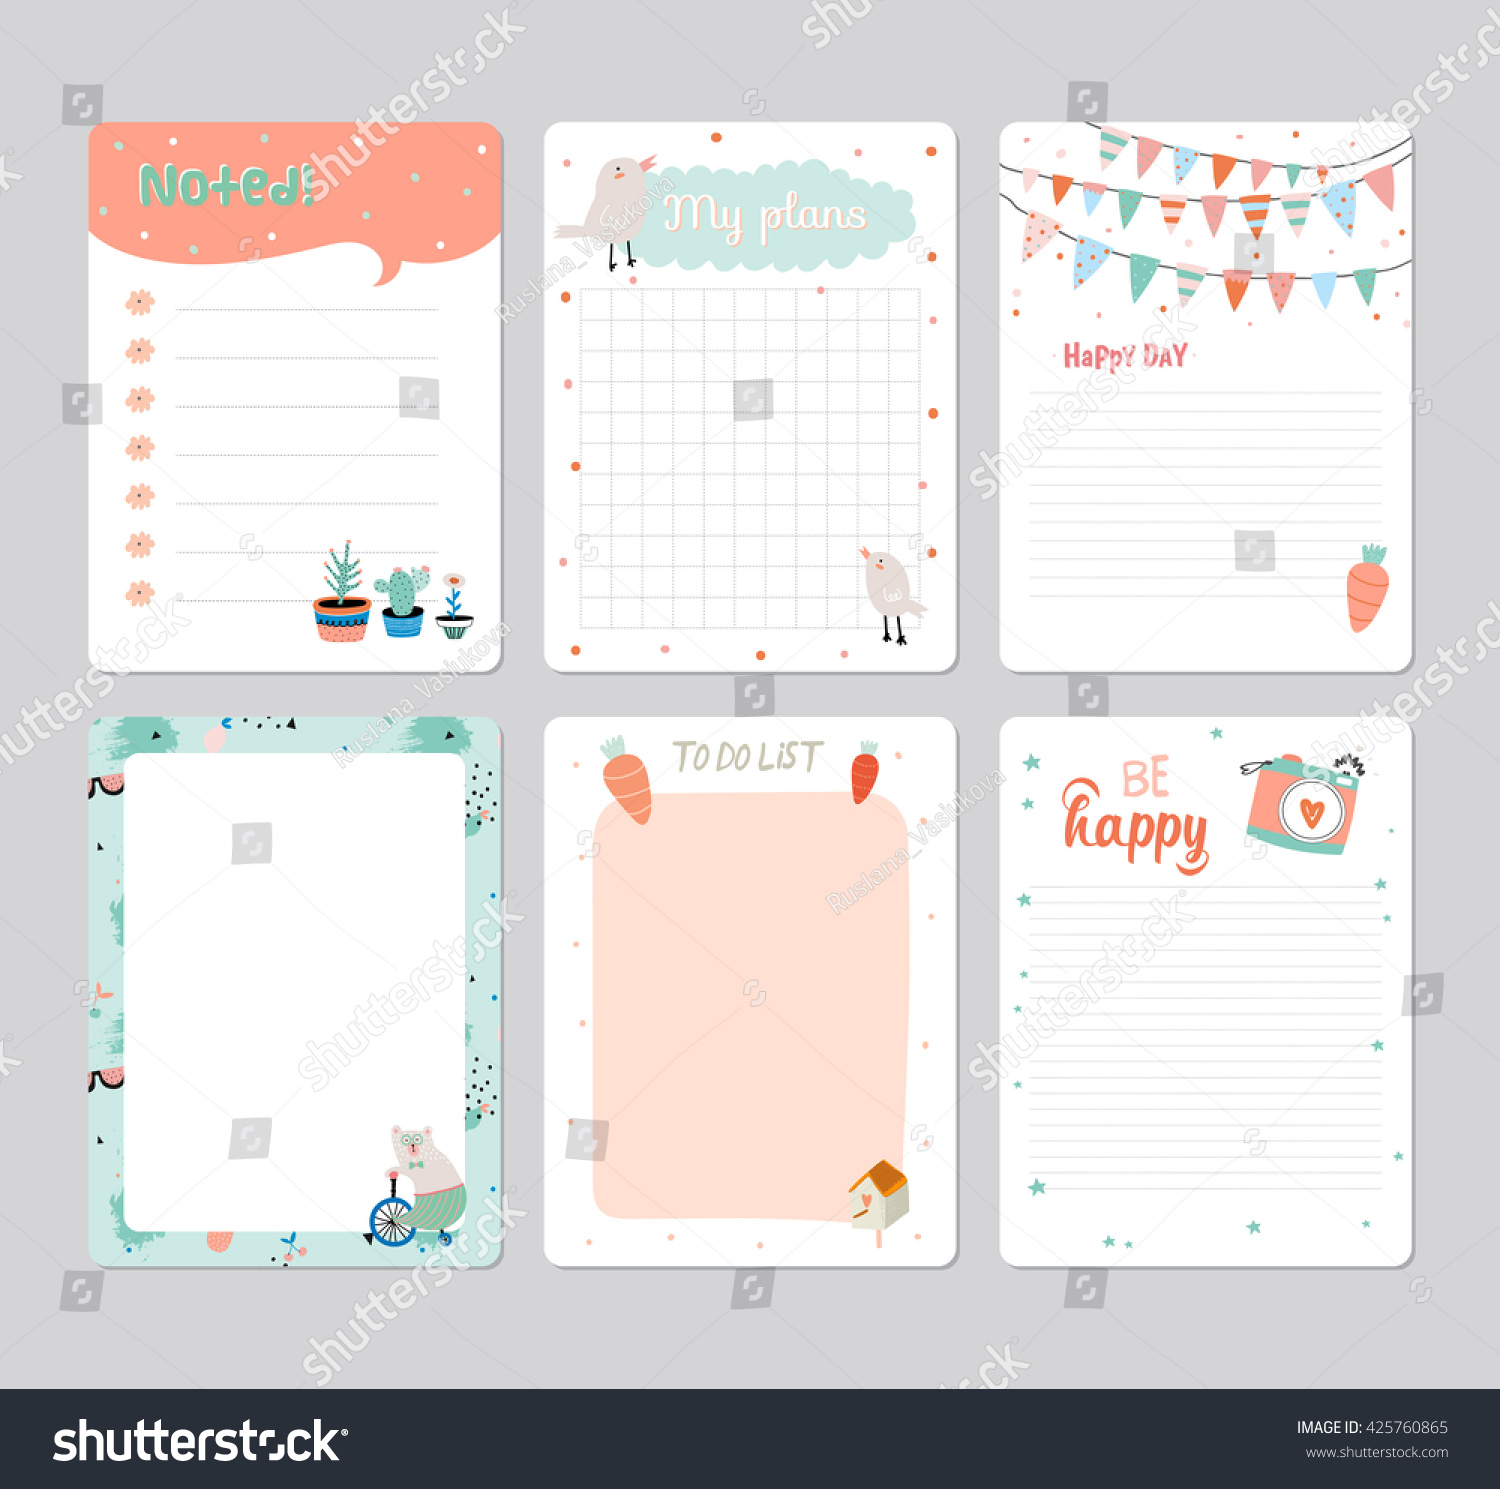 Cute Daily Planner Templates | www.galleryhip.com - The Hippest Pics